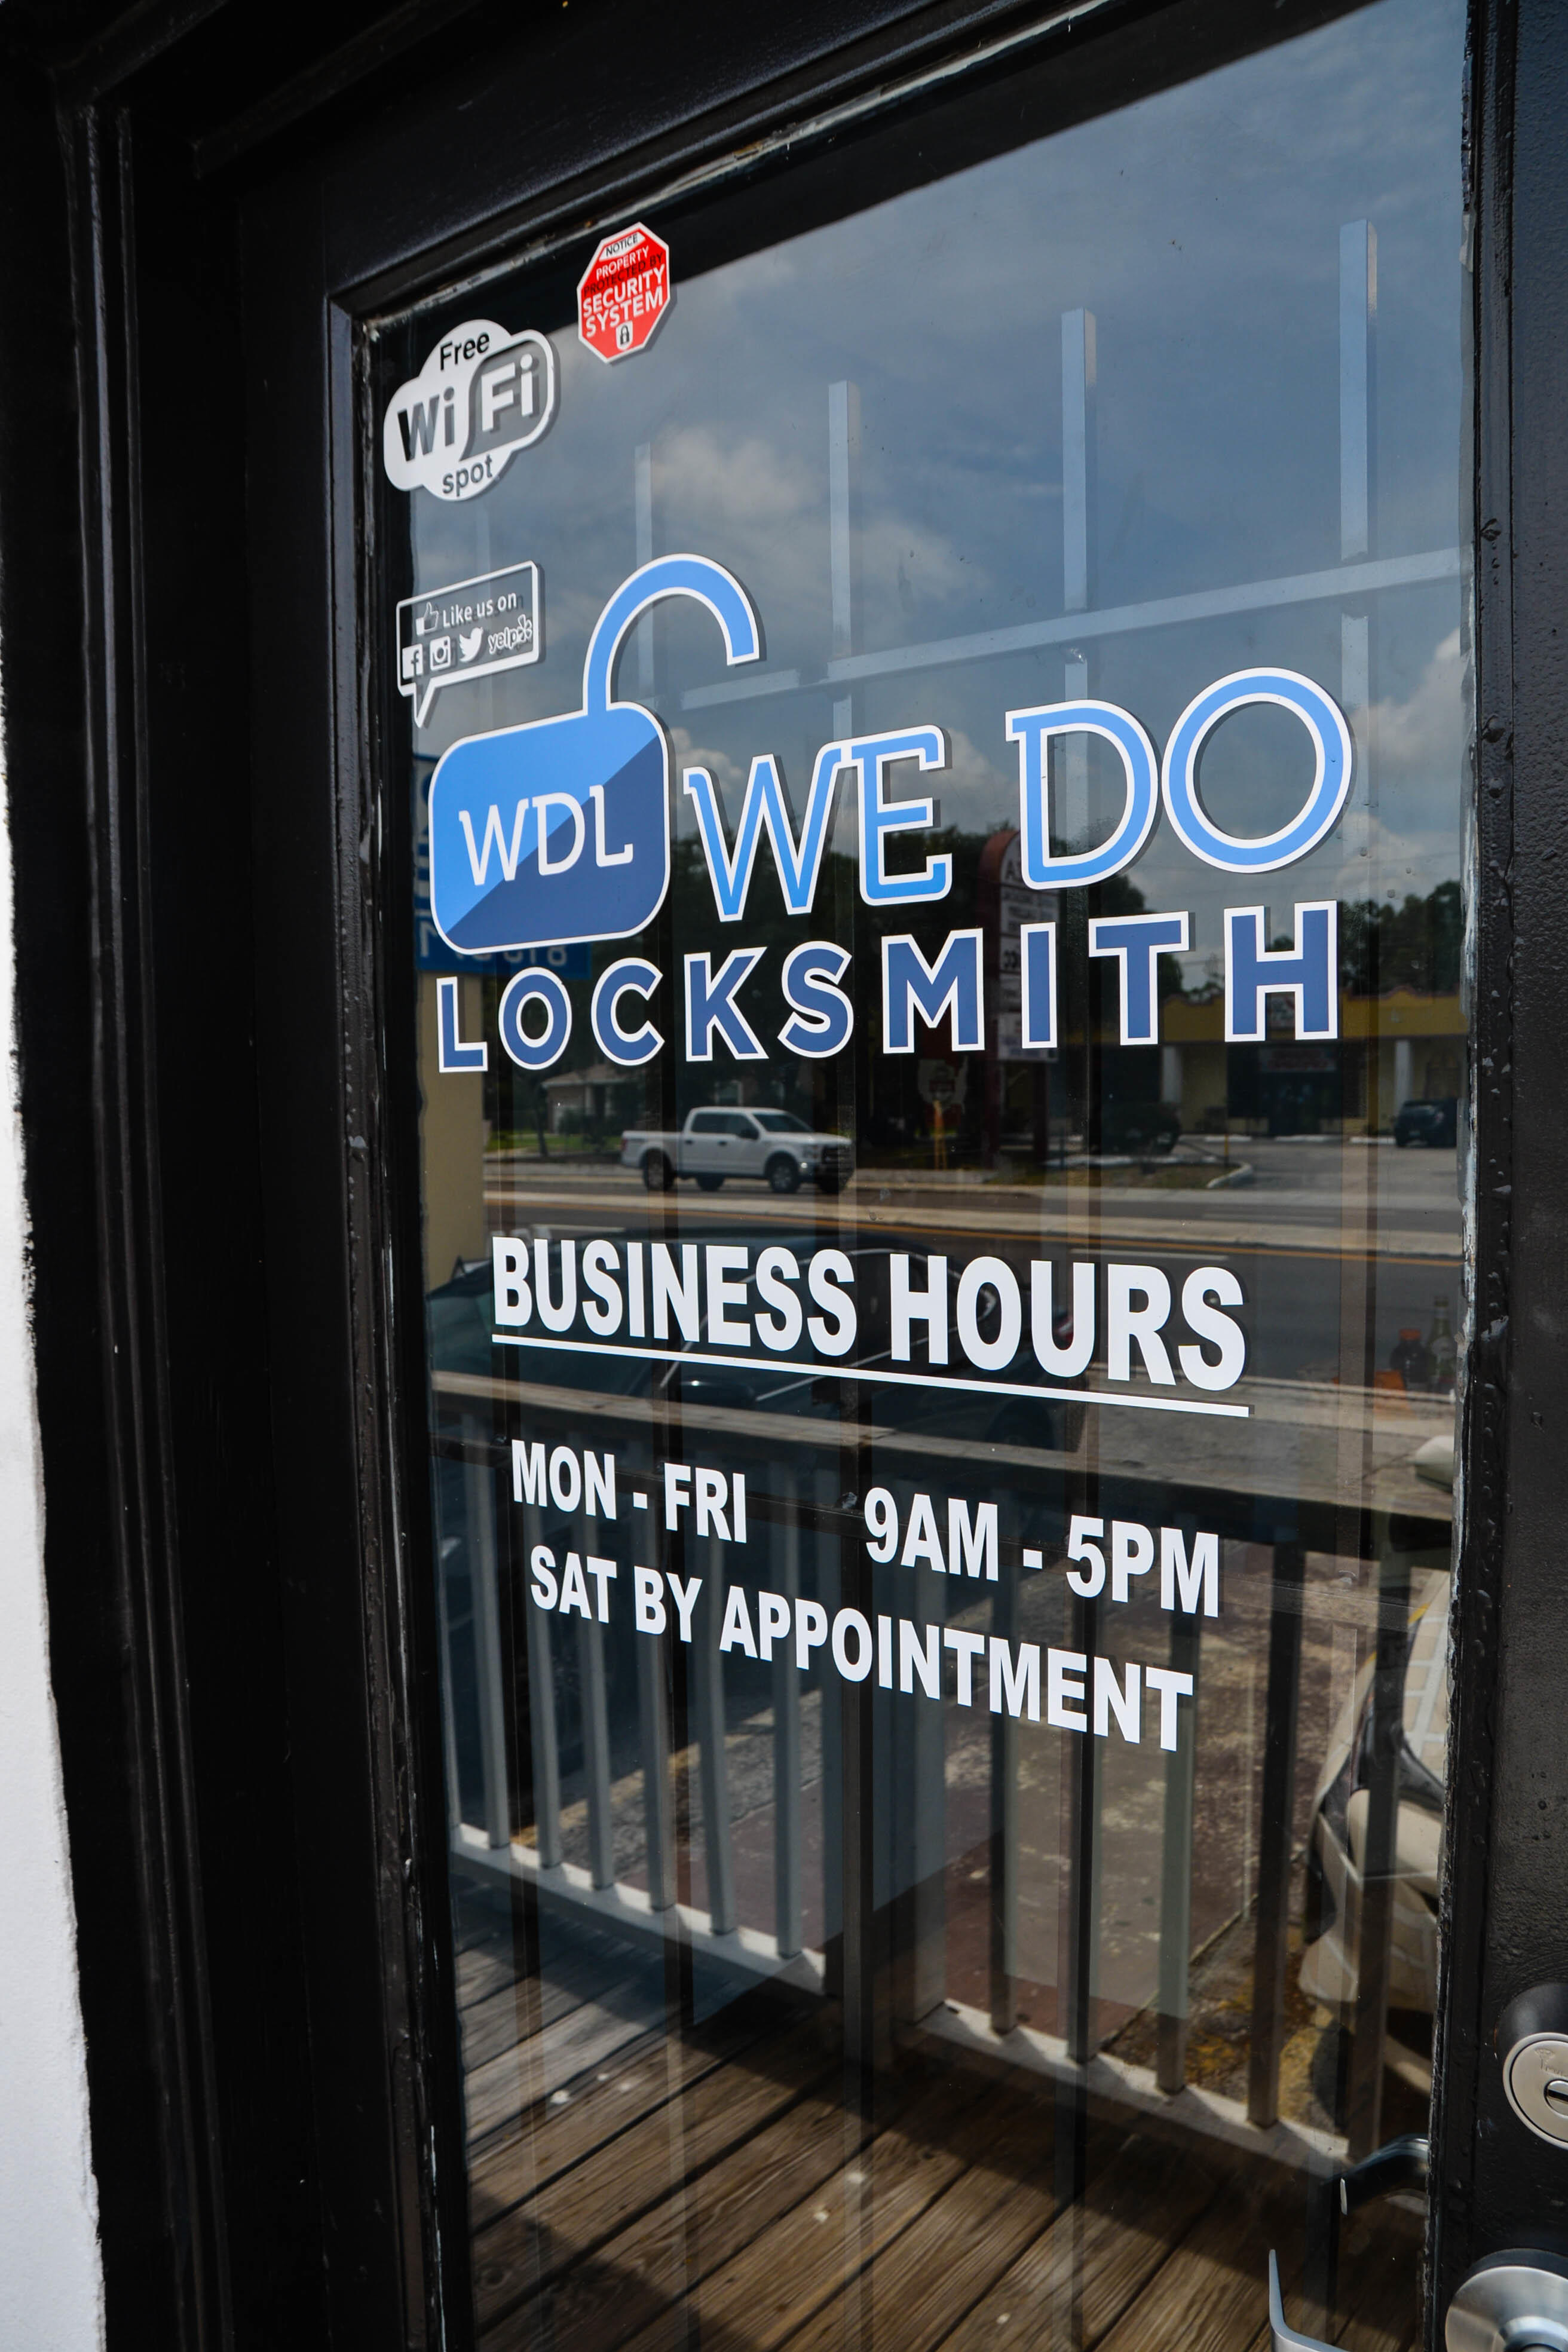 Car Locksmith Near me Tampa We do locksmith 813-760-1060 https://wedo-locksmith.com/